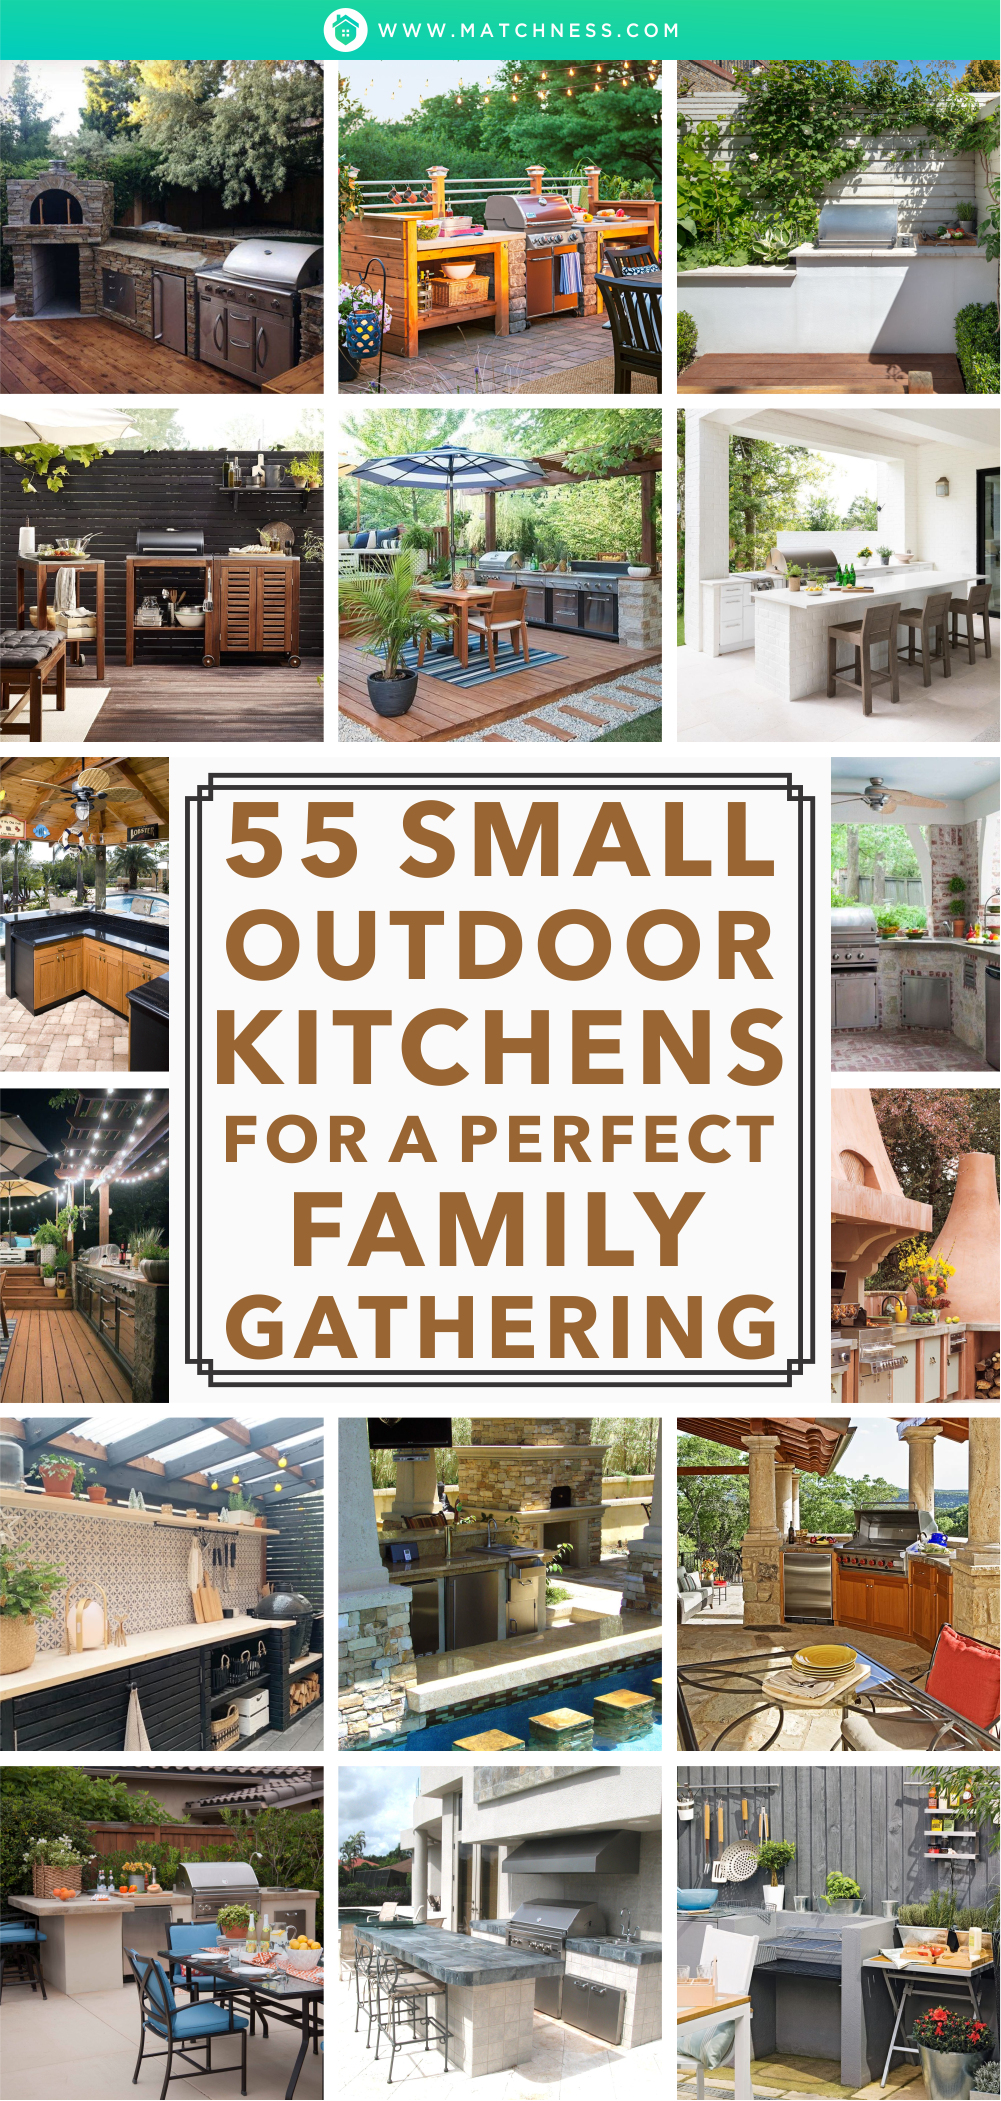 55-small-outdoor-kitchens-for-a-perfect-family-gathering1